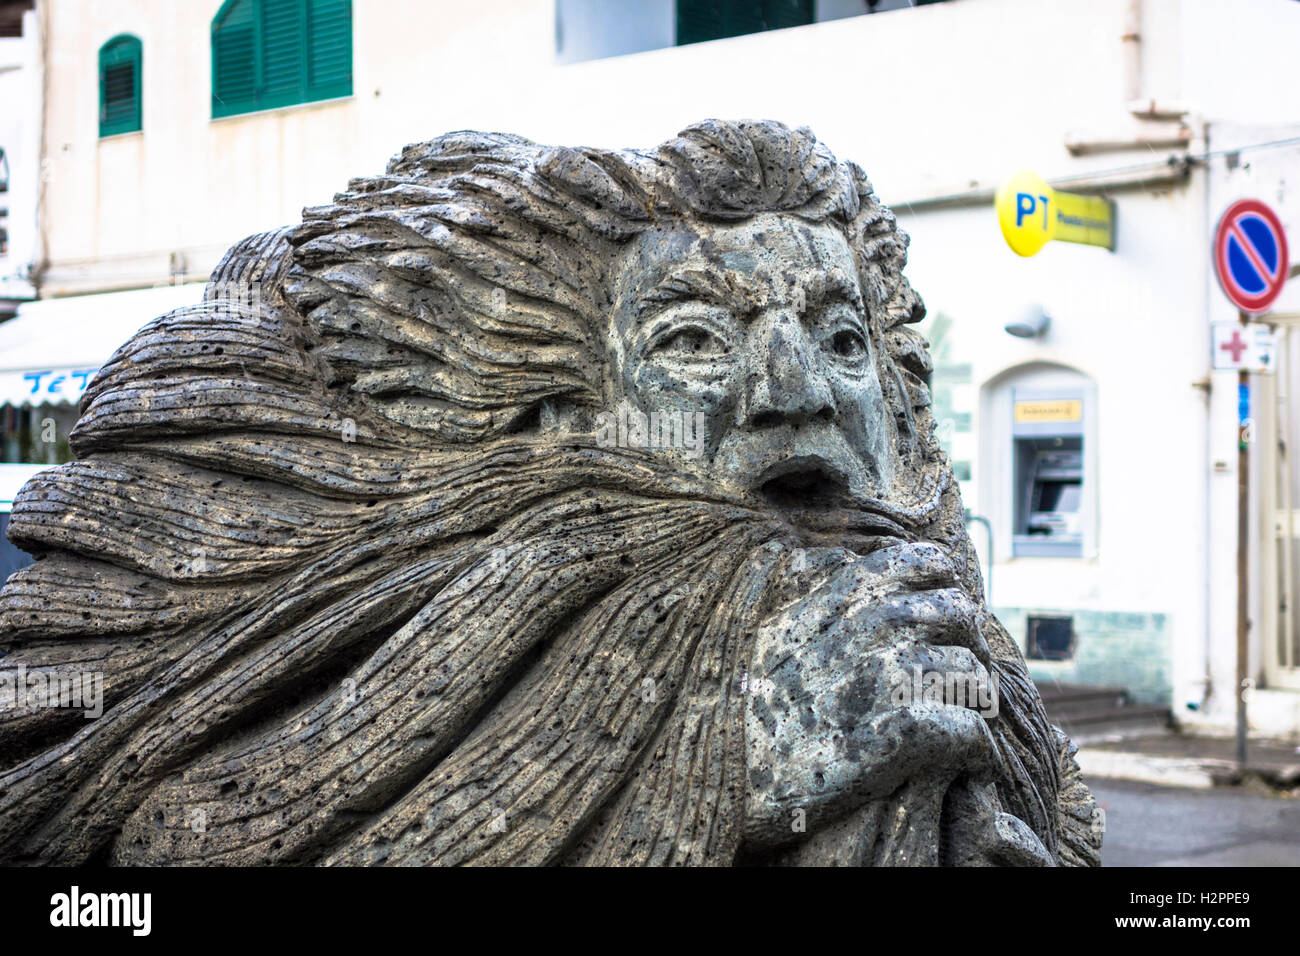 Statue made of volcanic rock on the Island of Vulcano, Italy Stock Photo